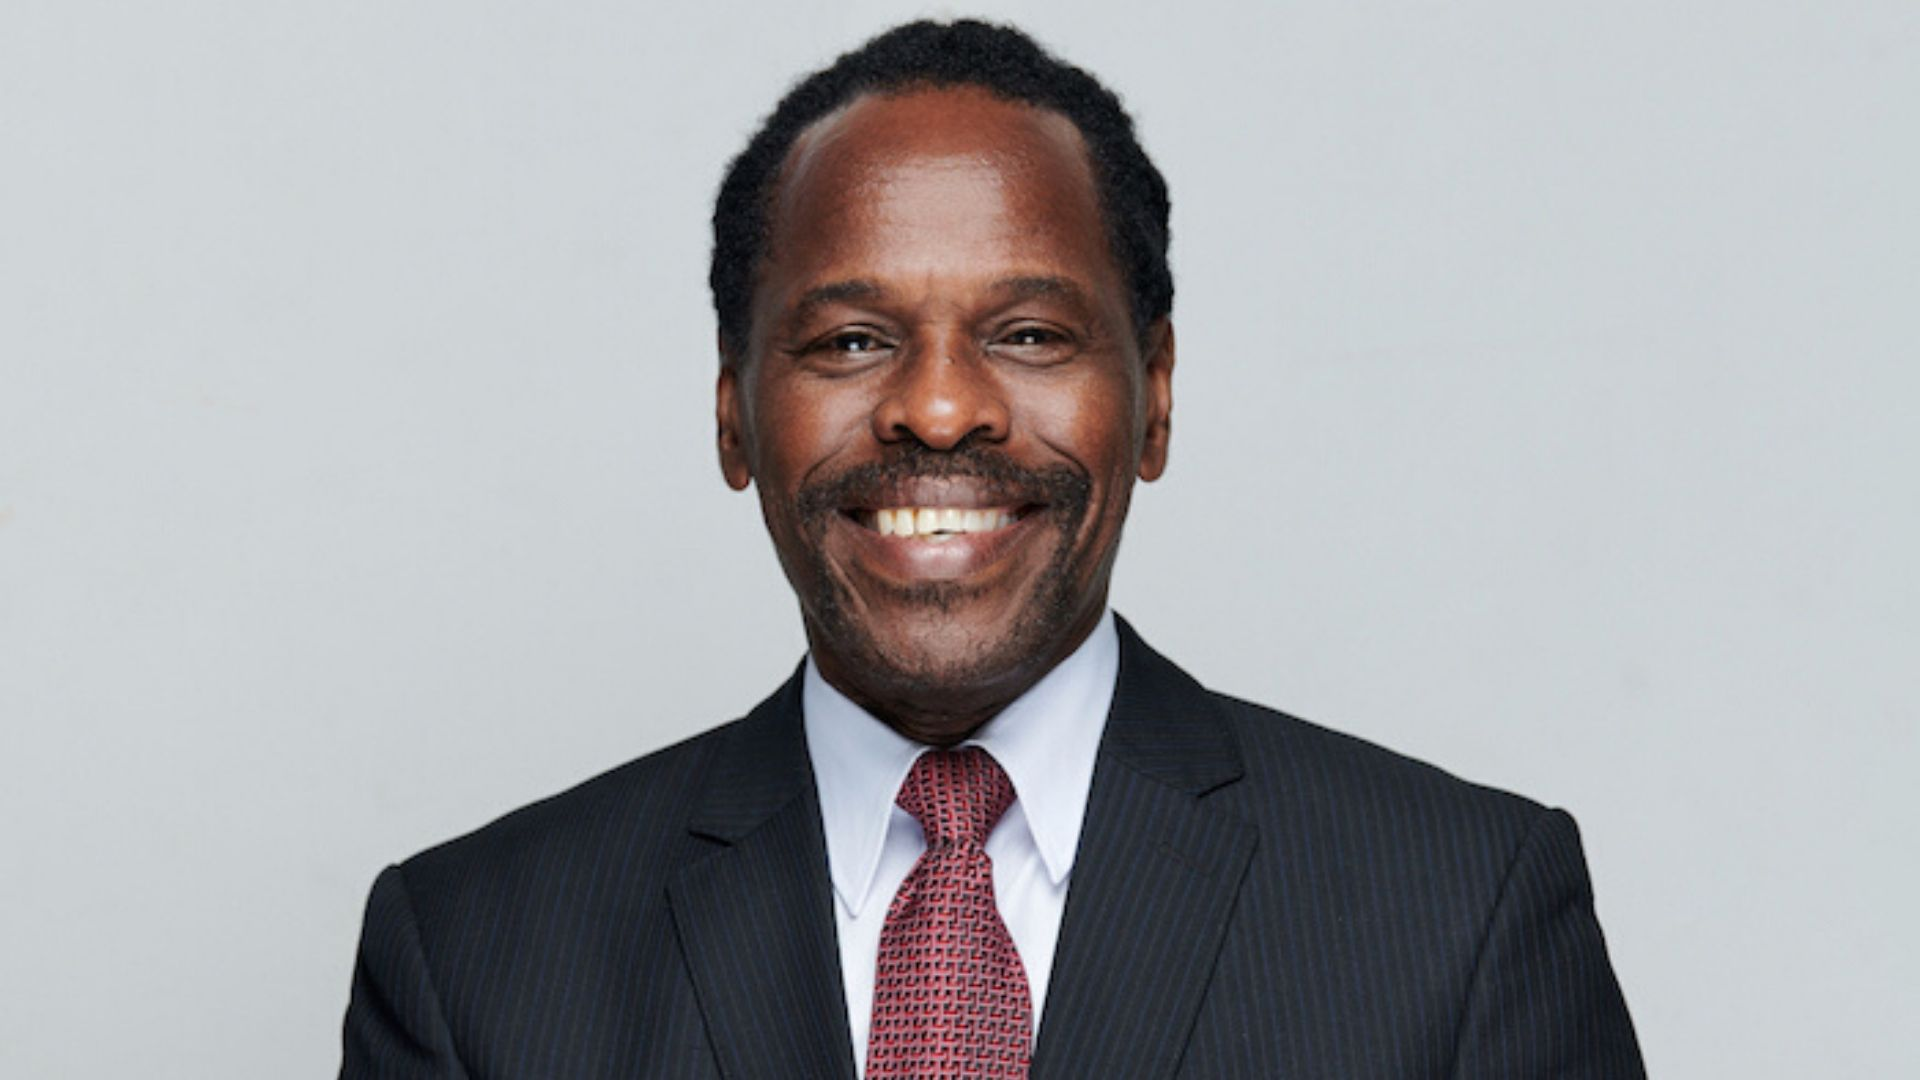 Pictured: Newly-appointed Minister of Youth Development, Fitzgerald Hinds.